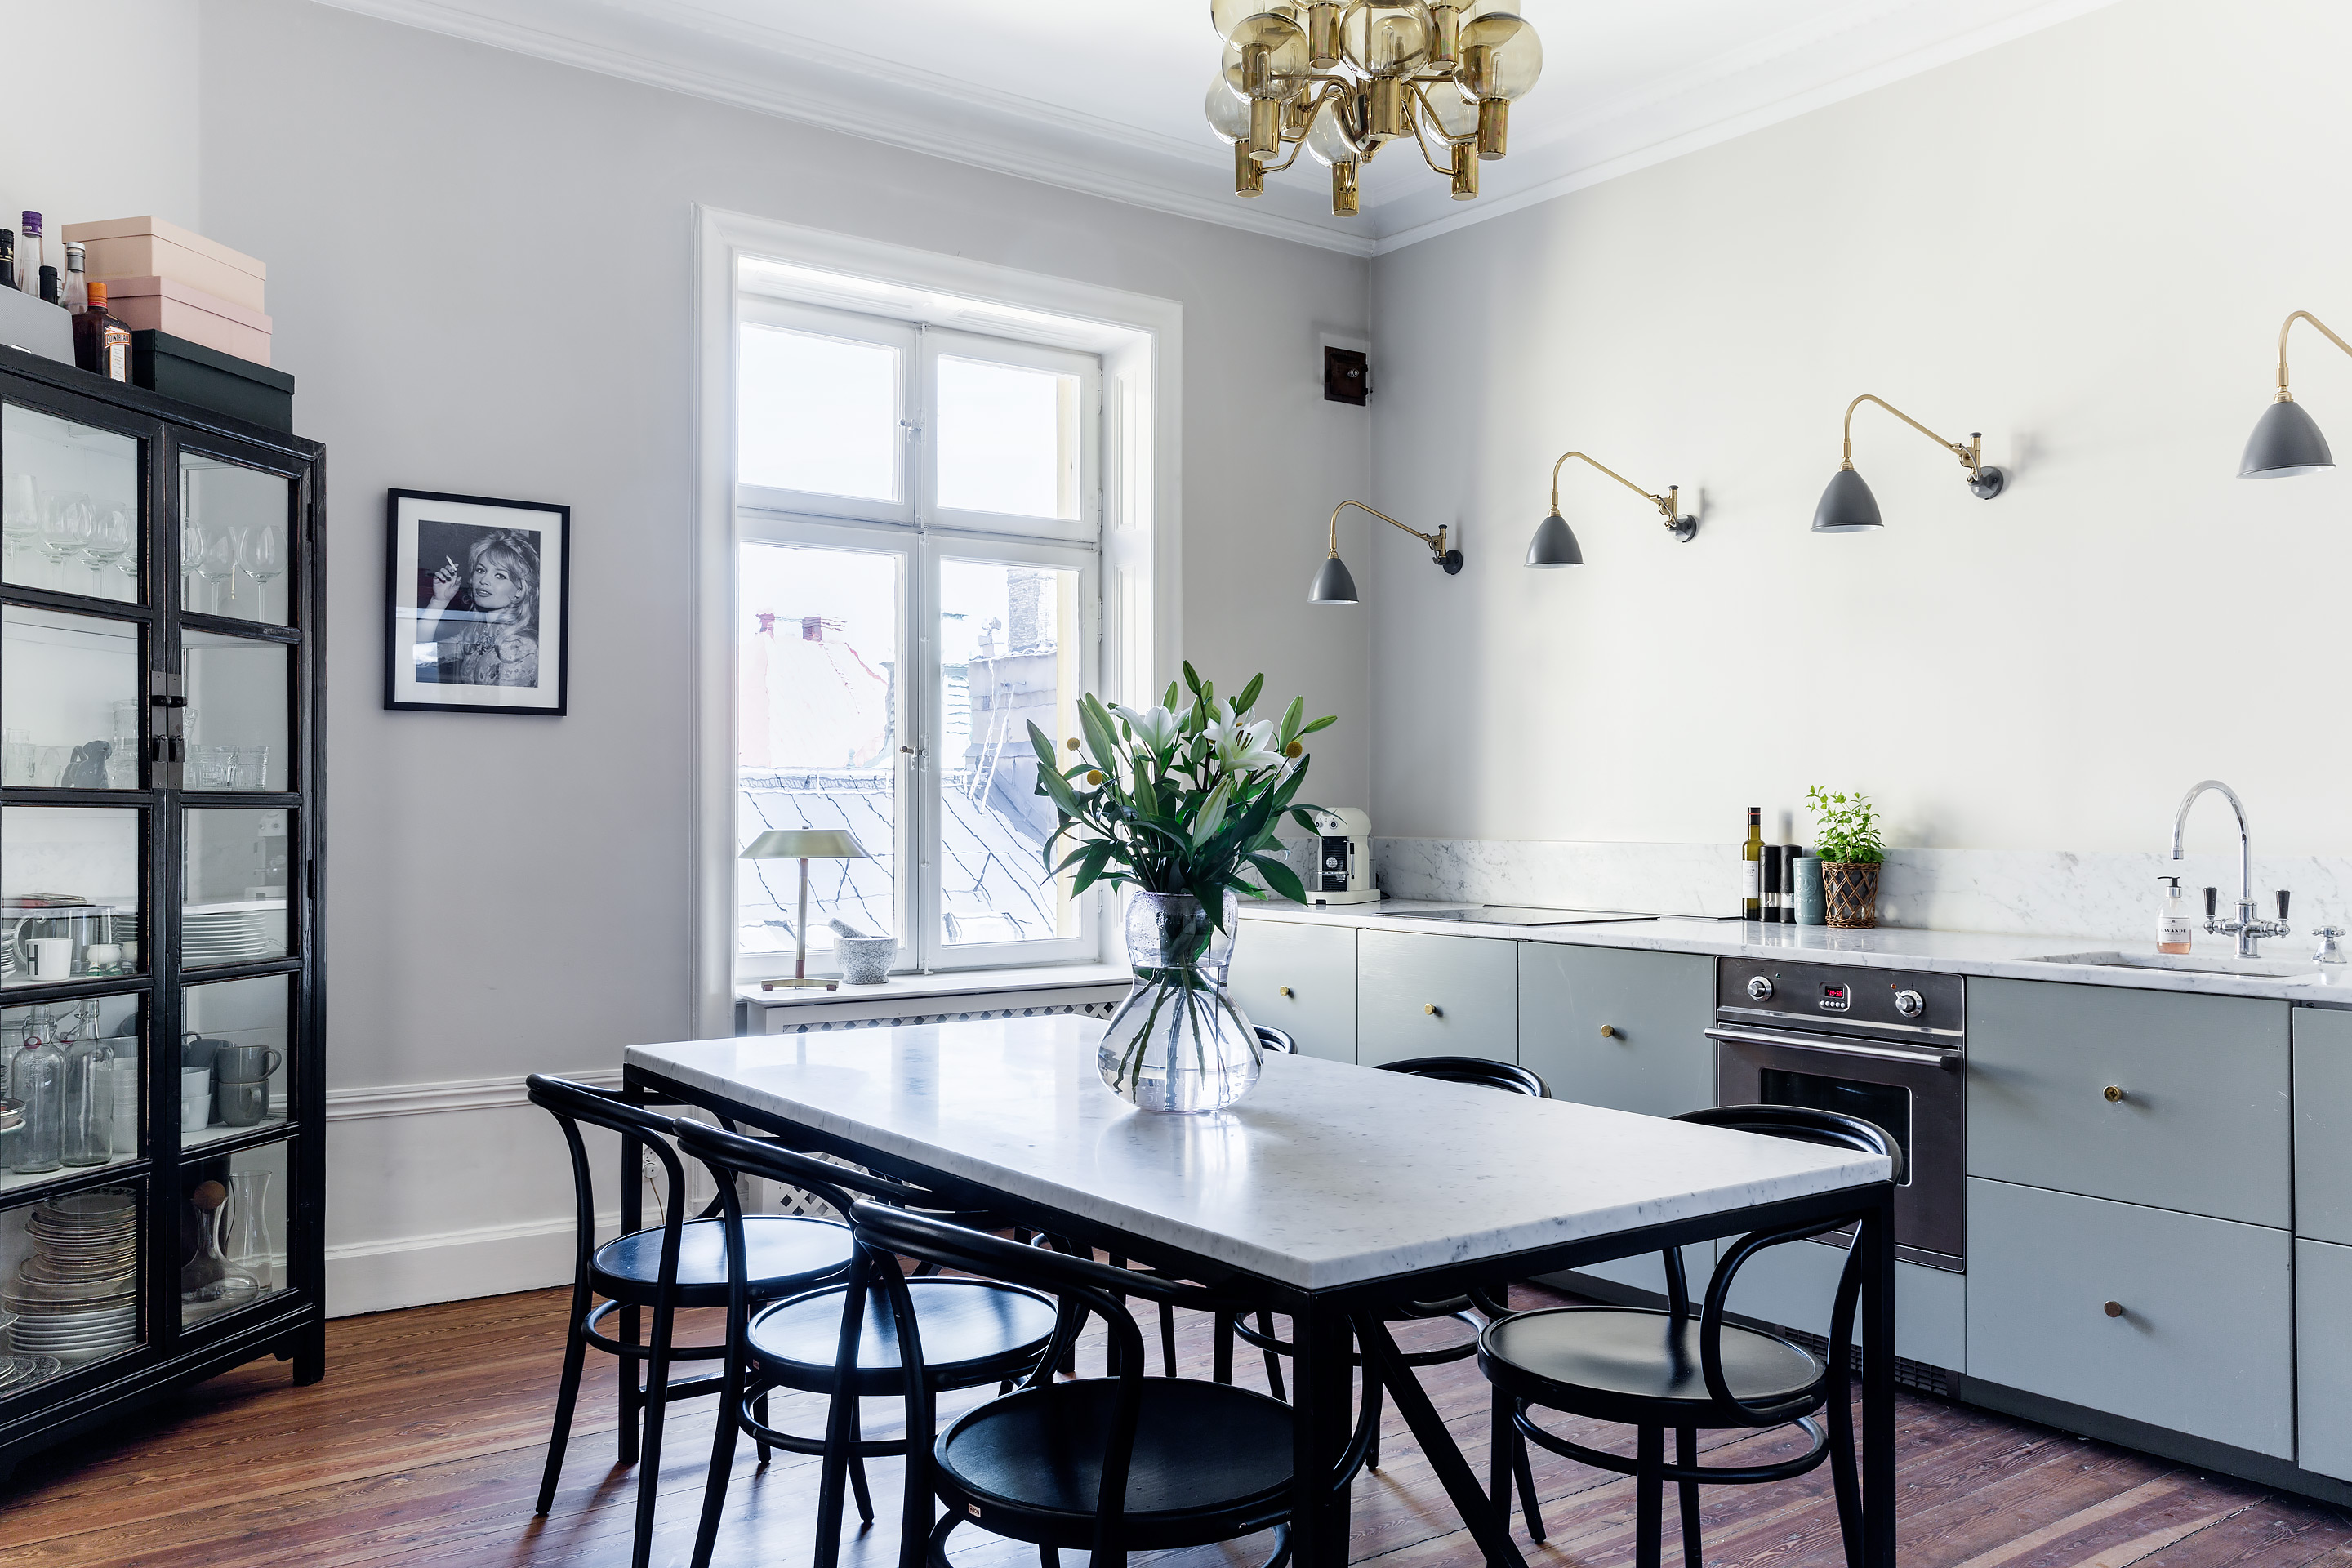 Stylish kitchen and dining space   COCO LAPINE DESIGNCOCO LAPINE DESIGN     Stylish kitchen and dining space   via Coco Lapine Design